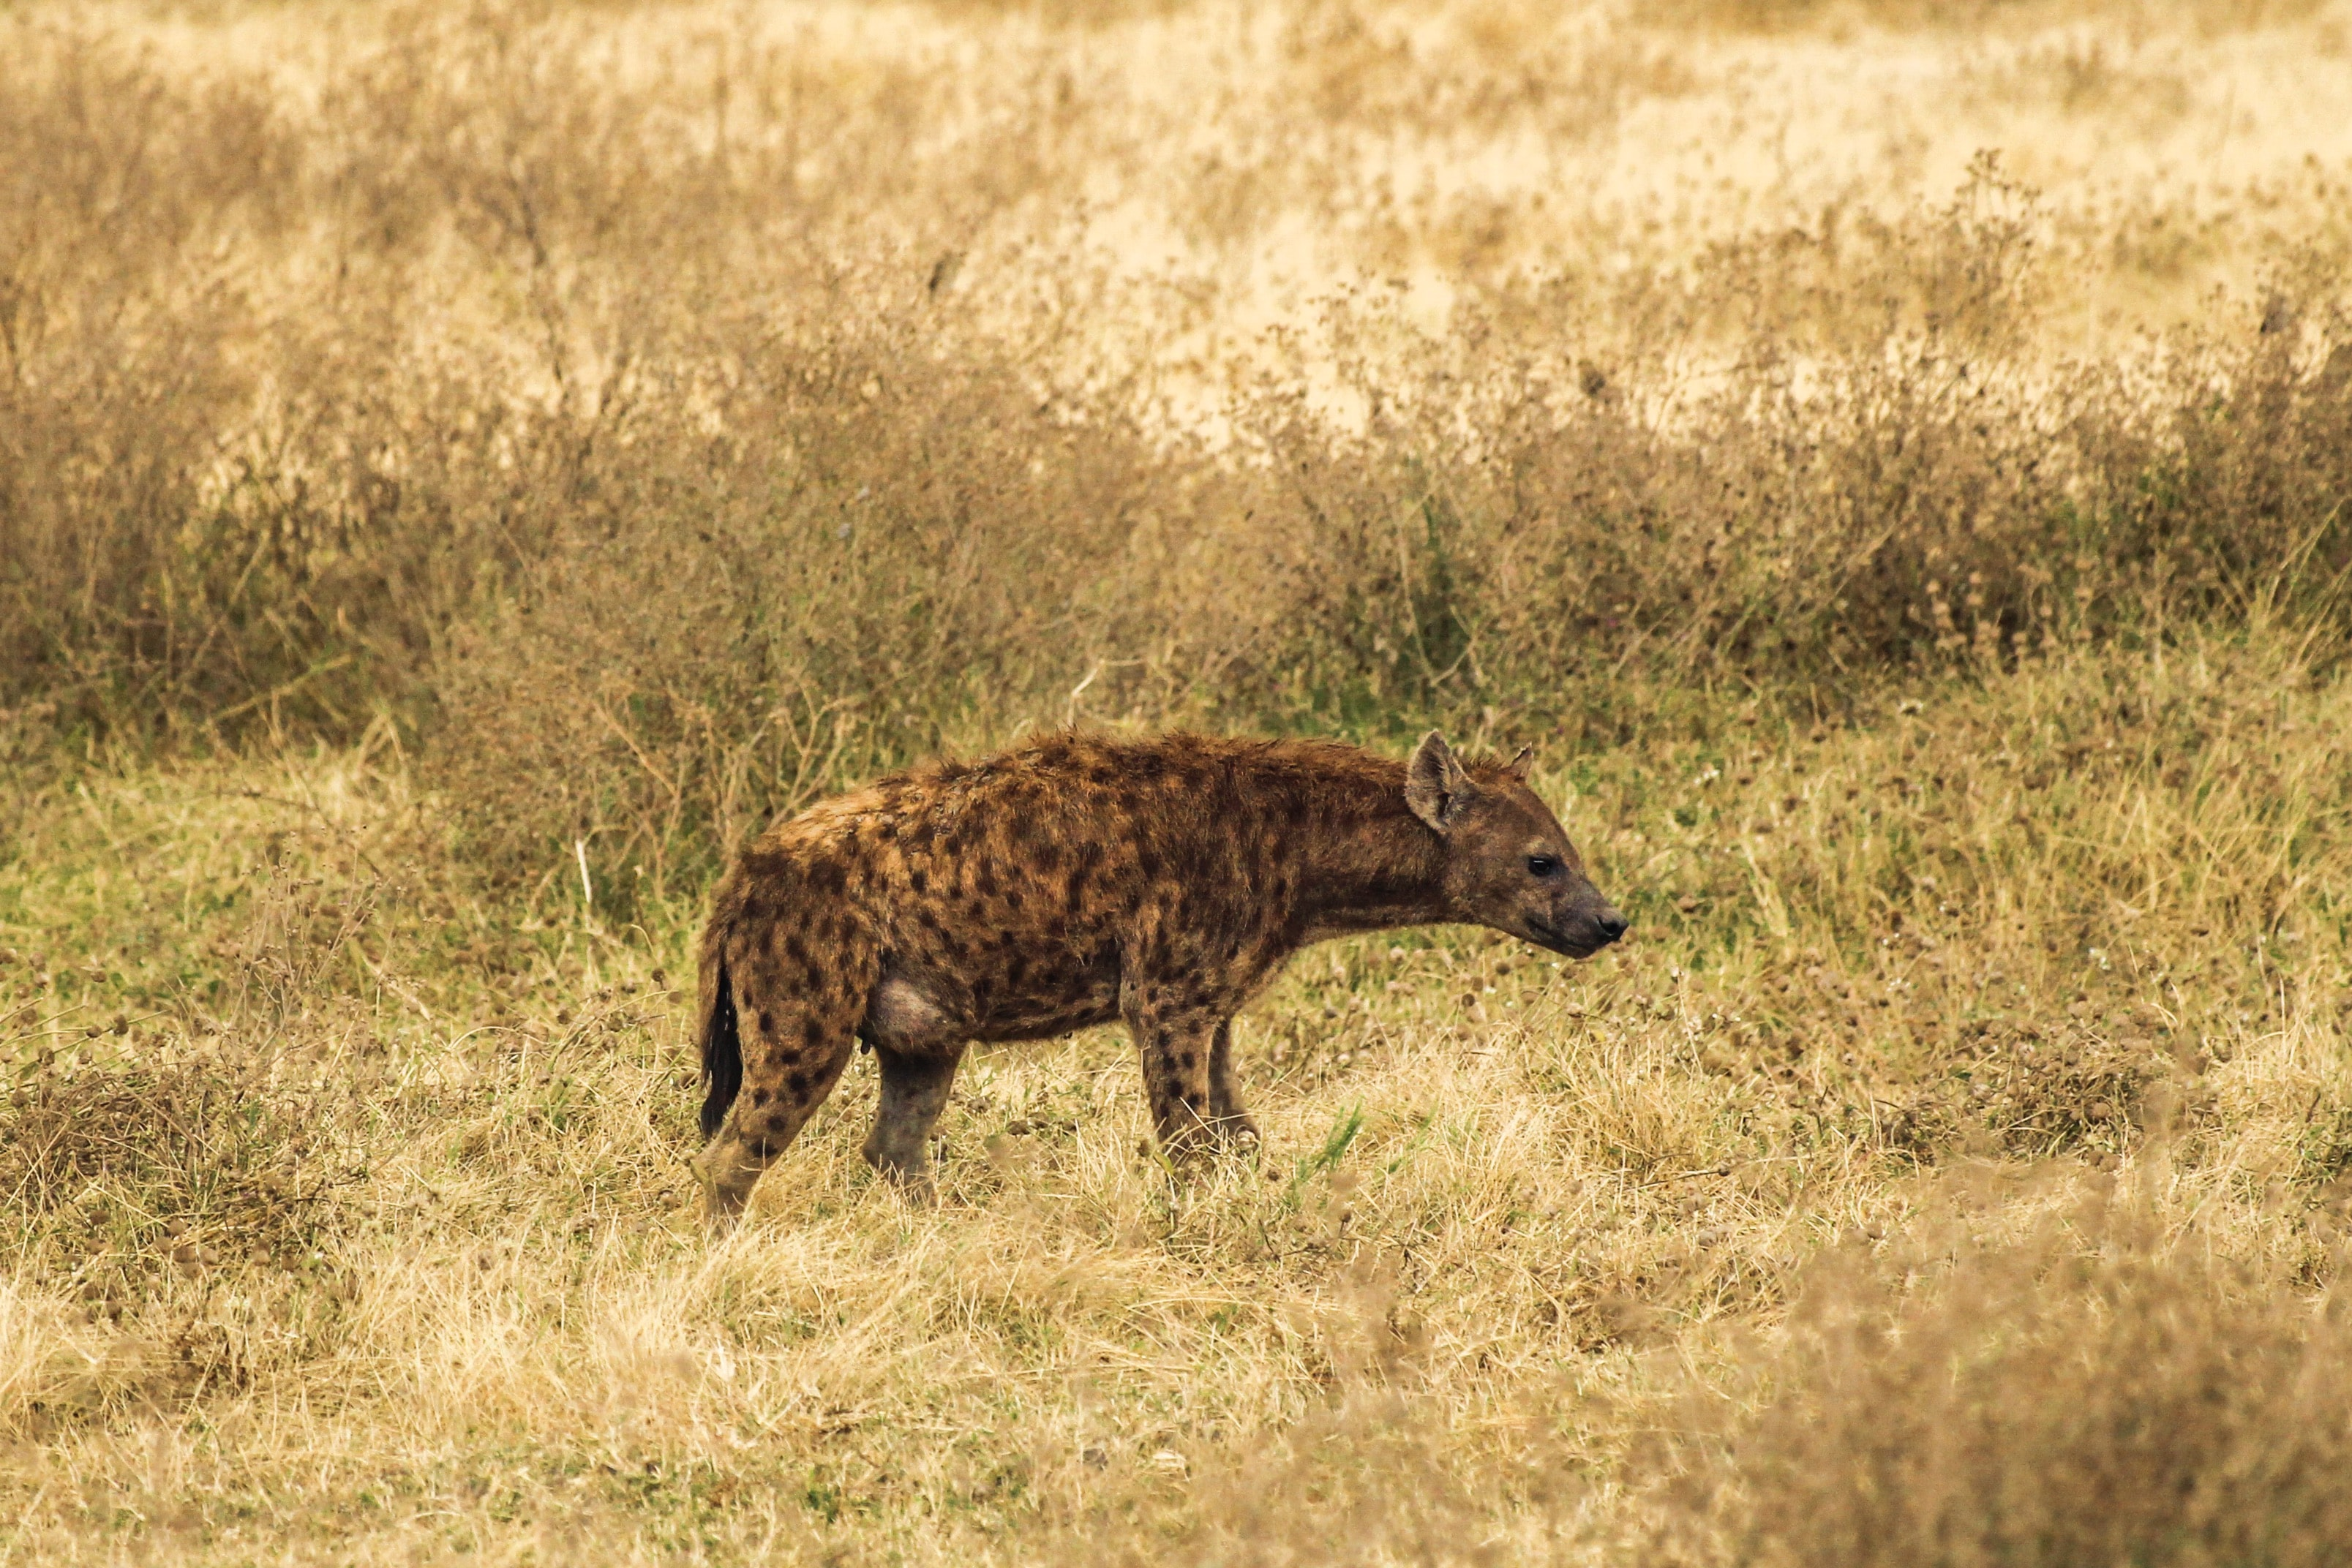 Spotted Hyena Brown And Black Hyena On The Field During Daytime Photography Unsplash Hyena Pictures Download Free Images Stock Photos On Unsplash